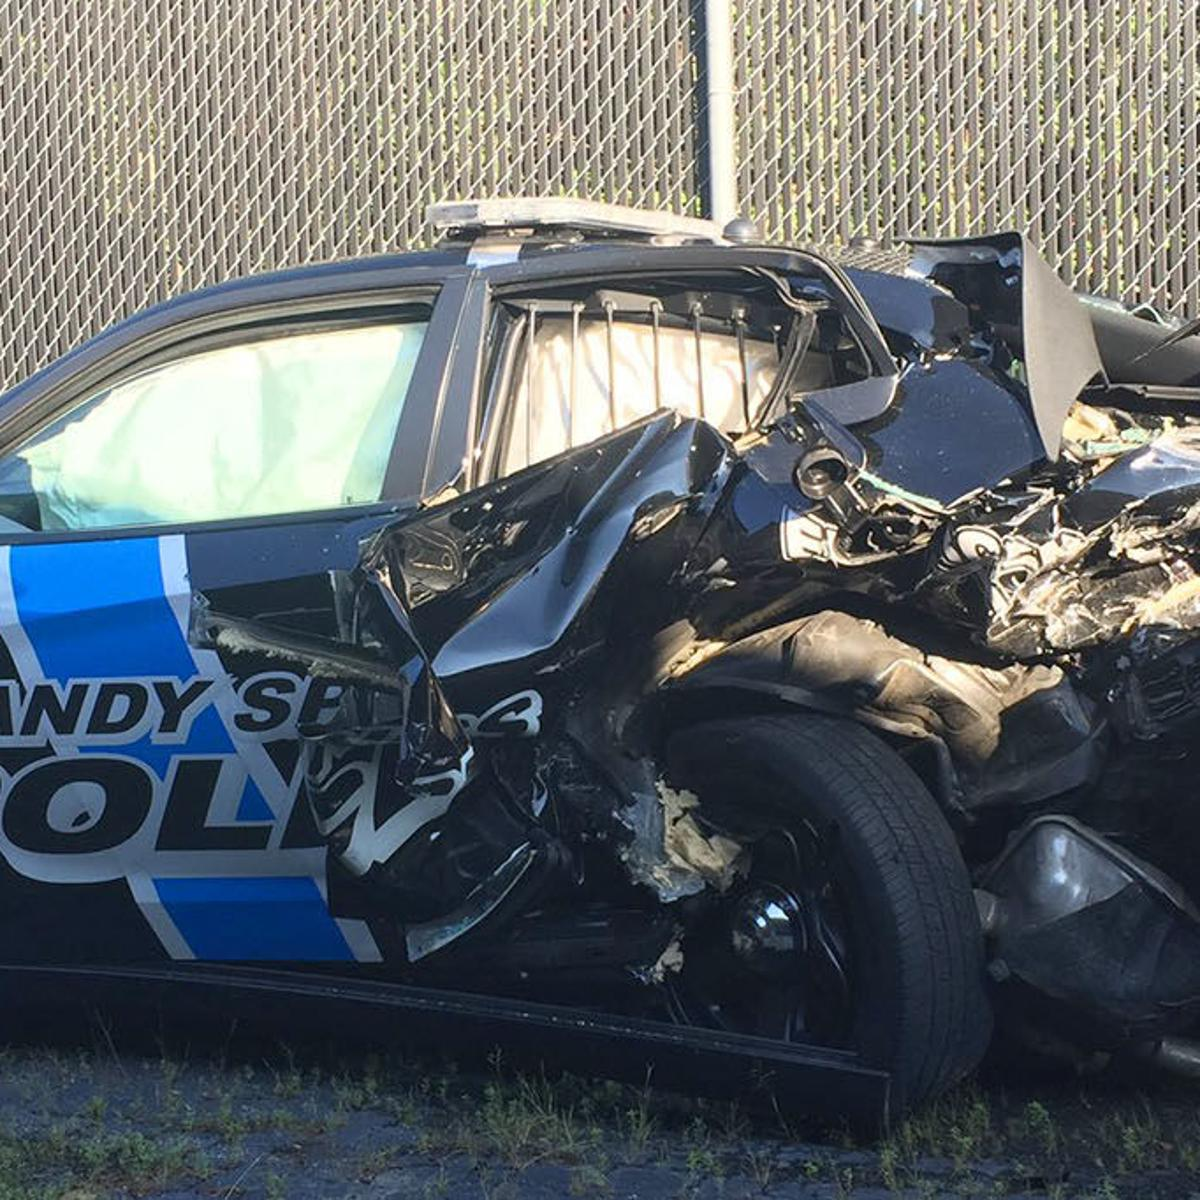 Police: Drunk Douglasville driver hits Sandy Springs cop car